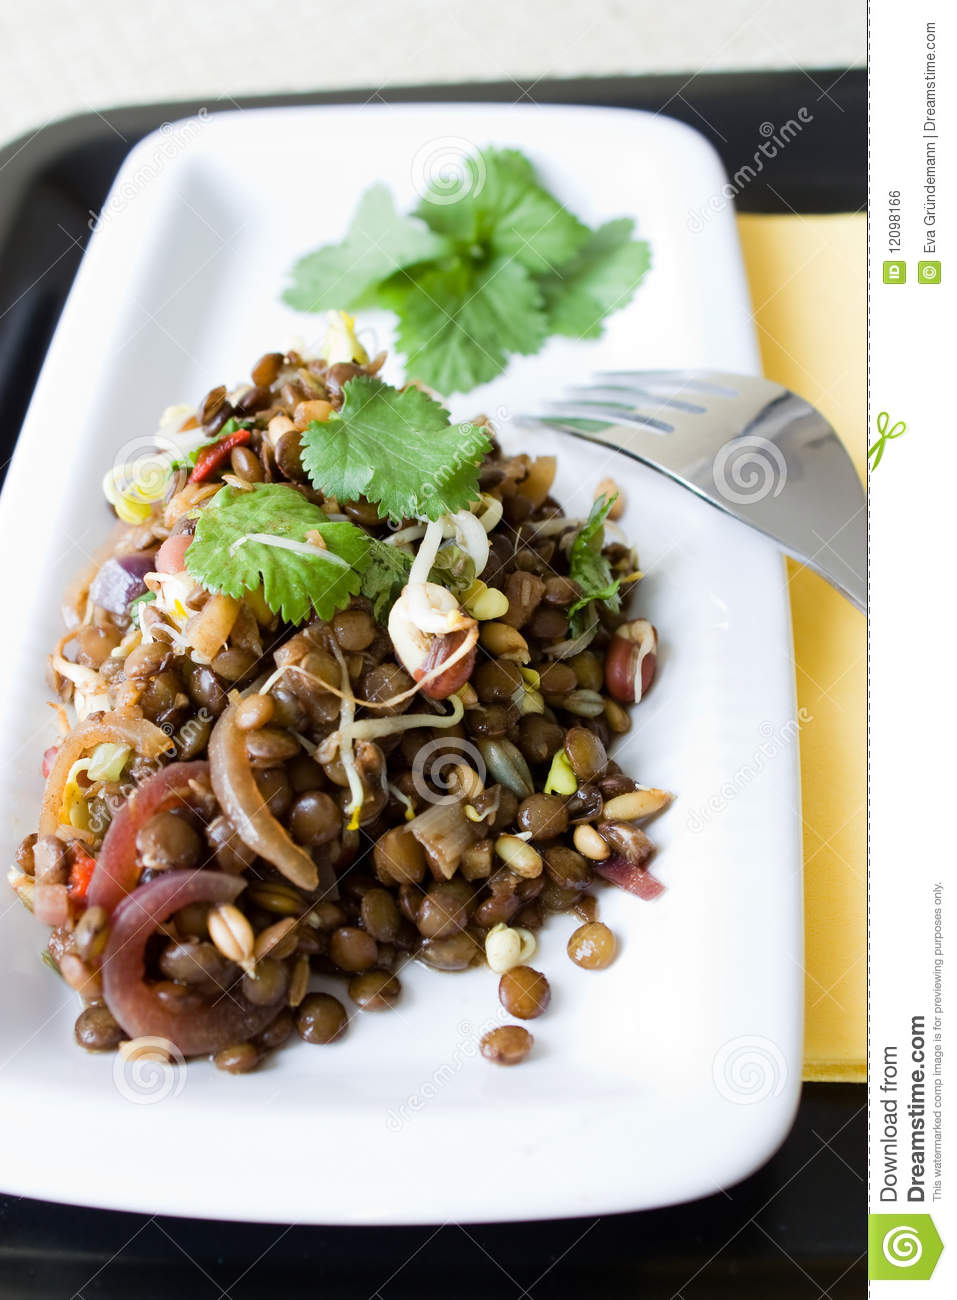 Download Indian lentil salad stock photo. Image of dish, coriander - 12098166